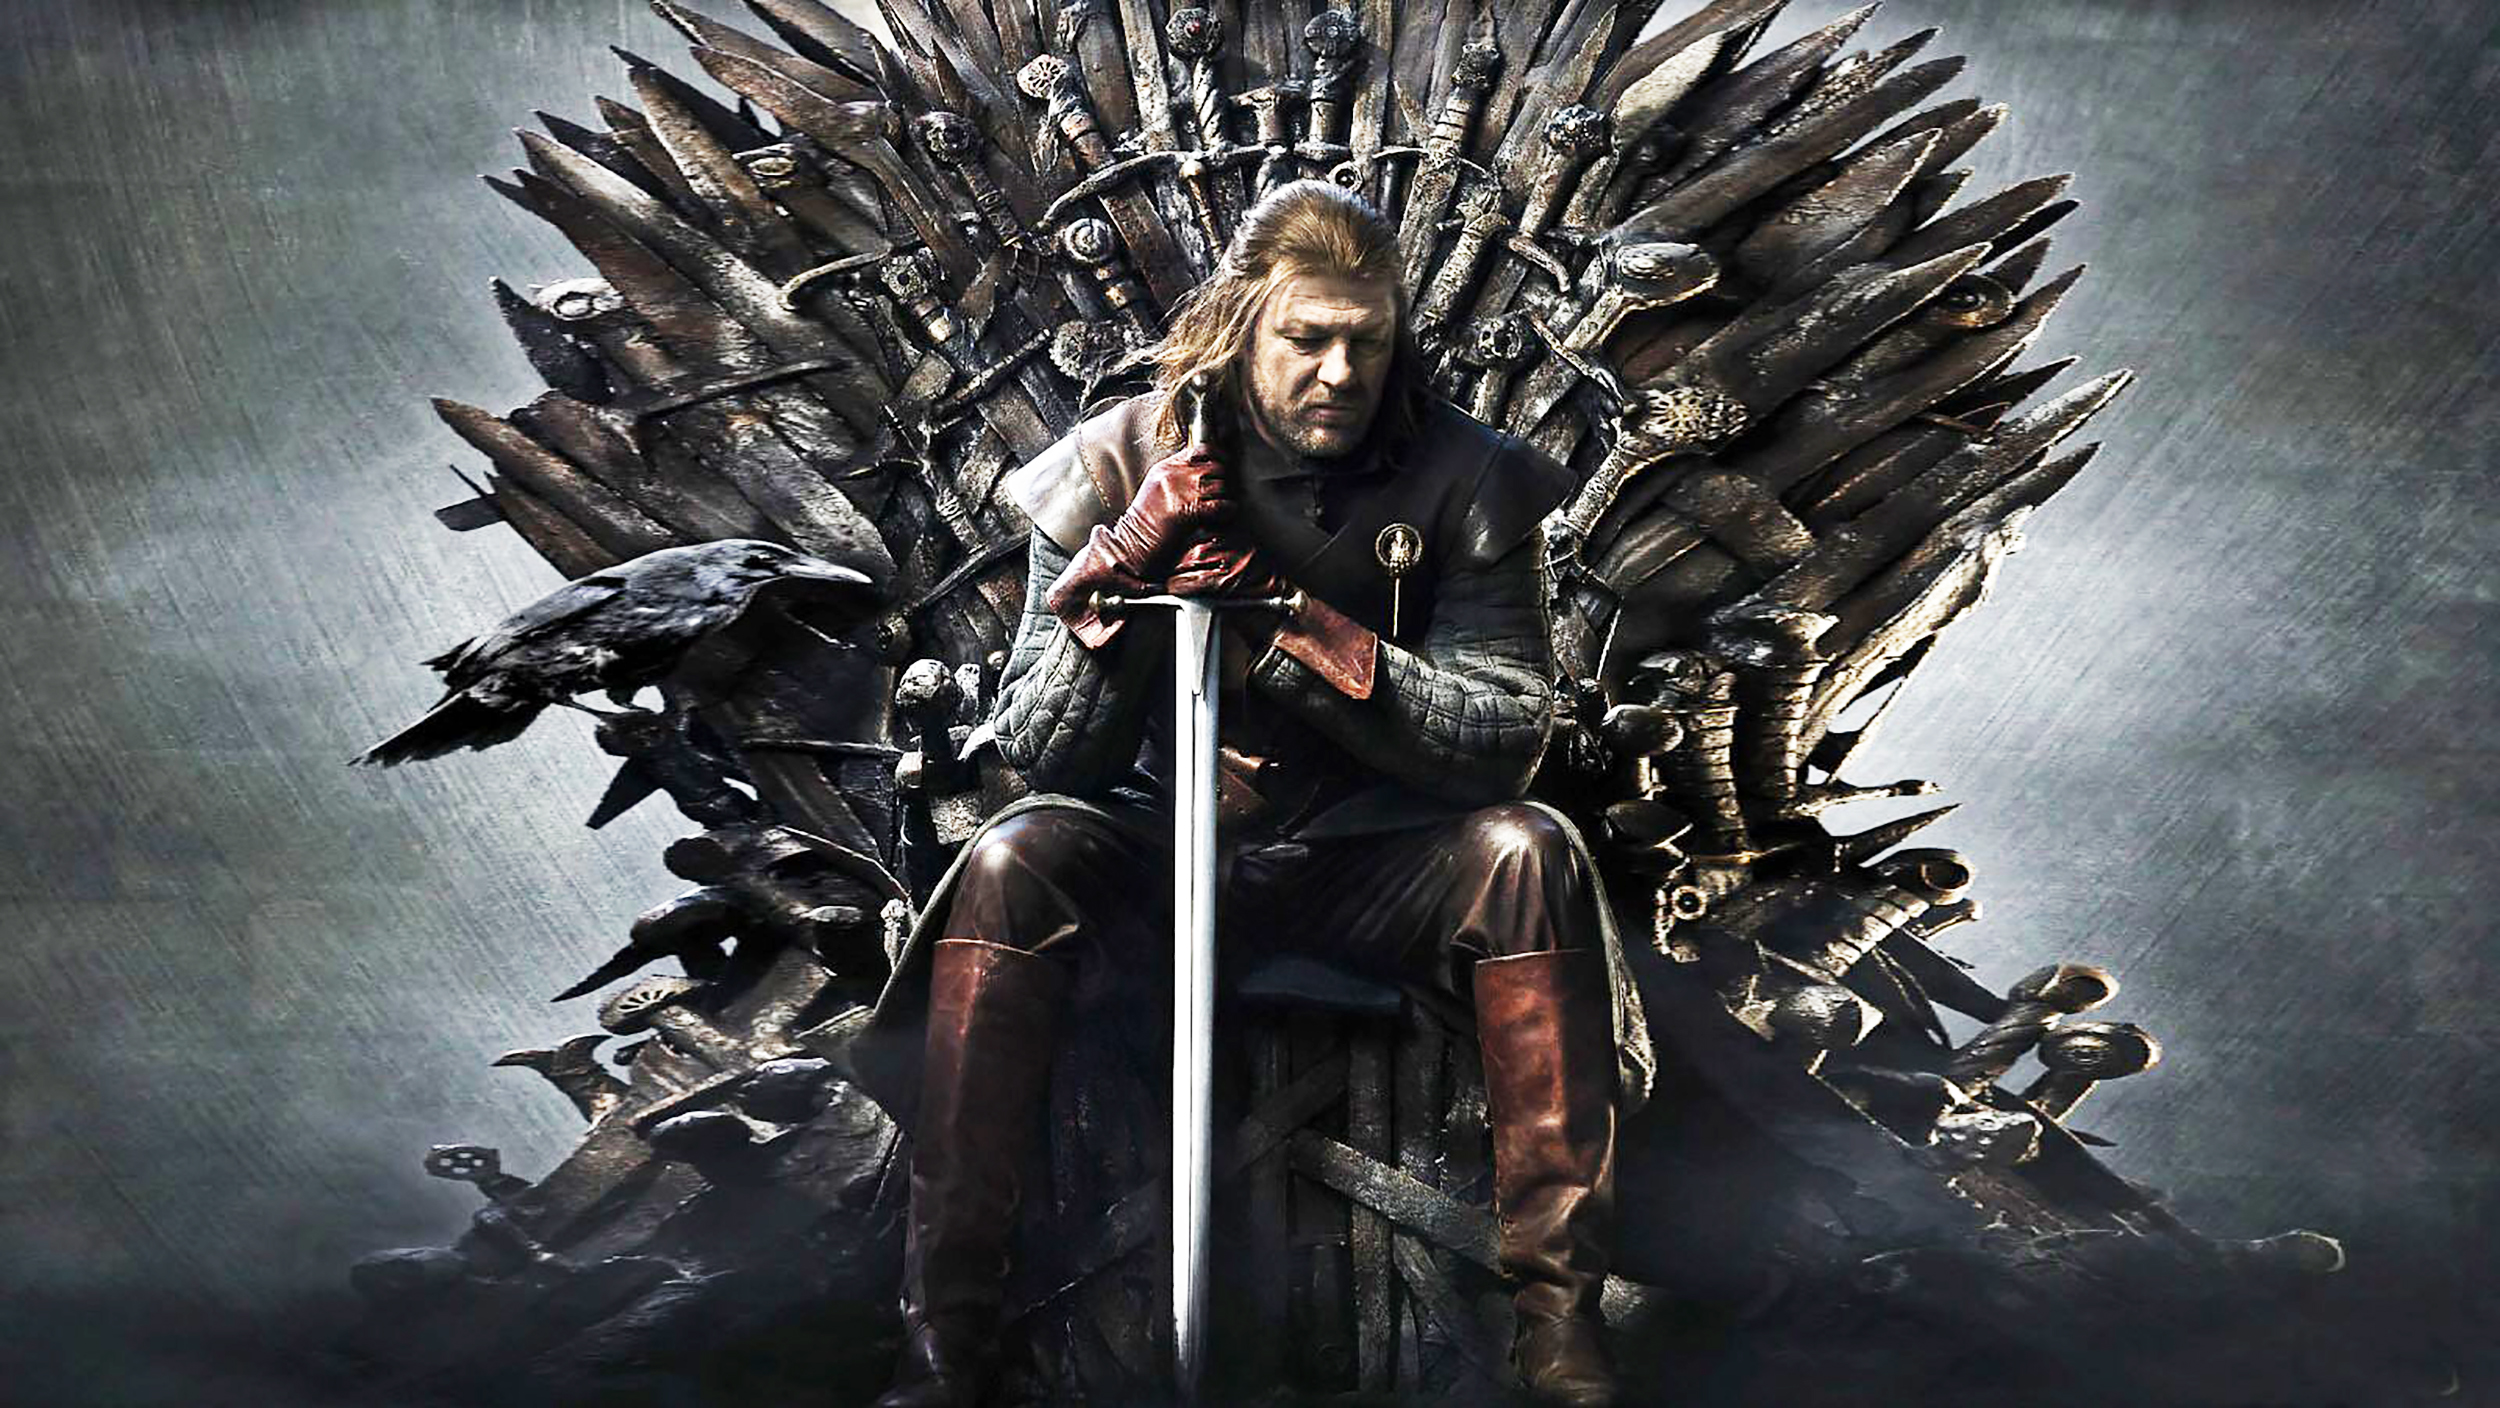 """Eddard Stark--portrayed by Sean Bean-- (pictured above) was a staple of the first season of""""Game of Thrones."""" Though """"Game of Thrones"""" will soon enter its final season, the show plans to have spinoffs. Some argue that the producers simply want to continue profiting from the series, but the fictional characters and sense of wonder deserve to be preserved in new media (courtesy of Creative Commons)."""